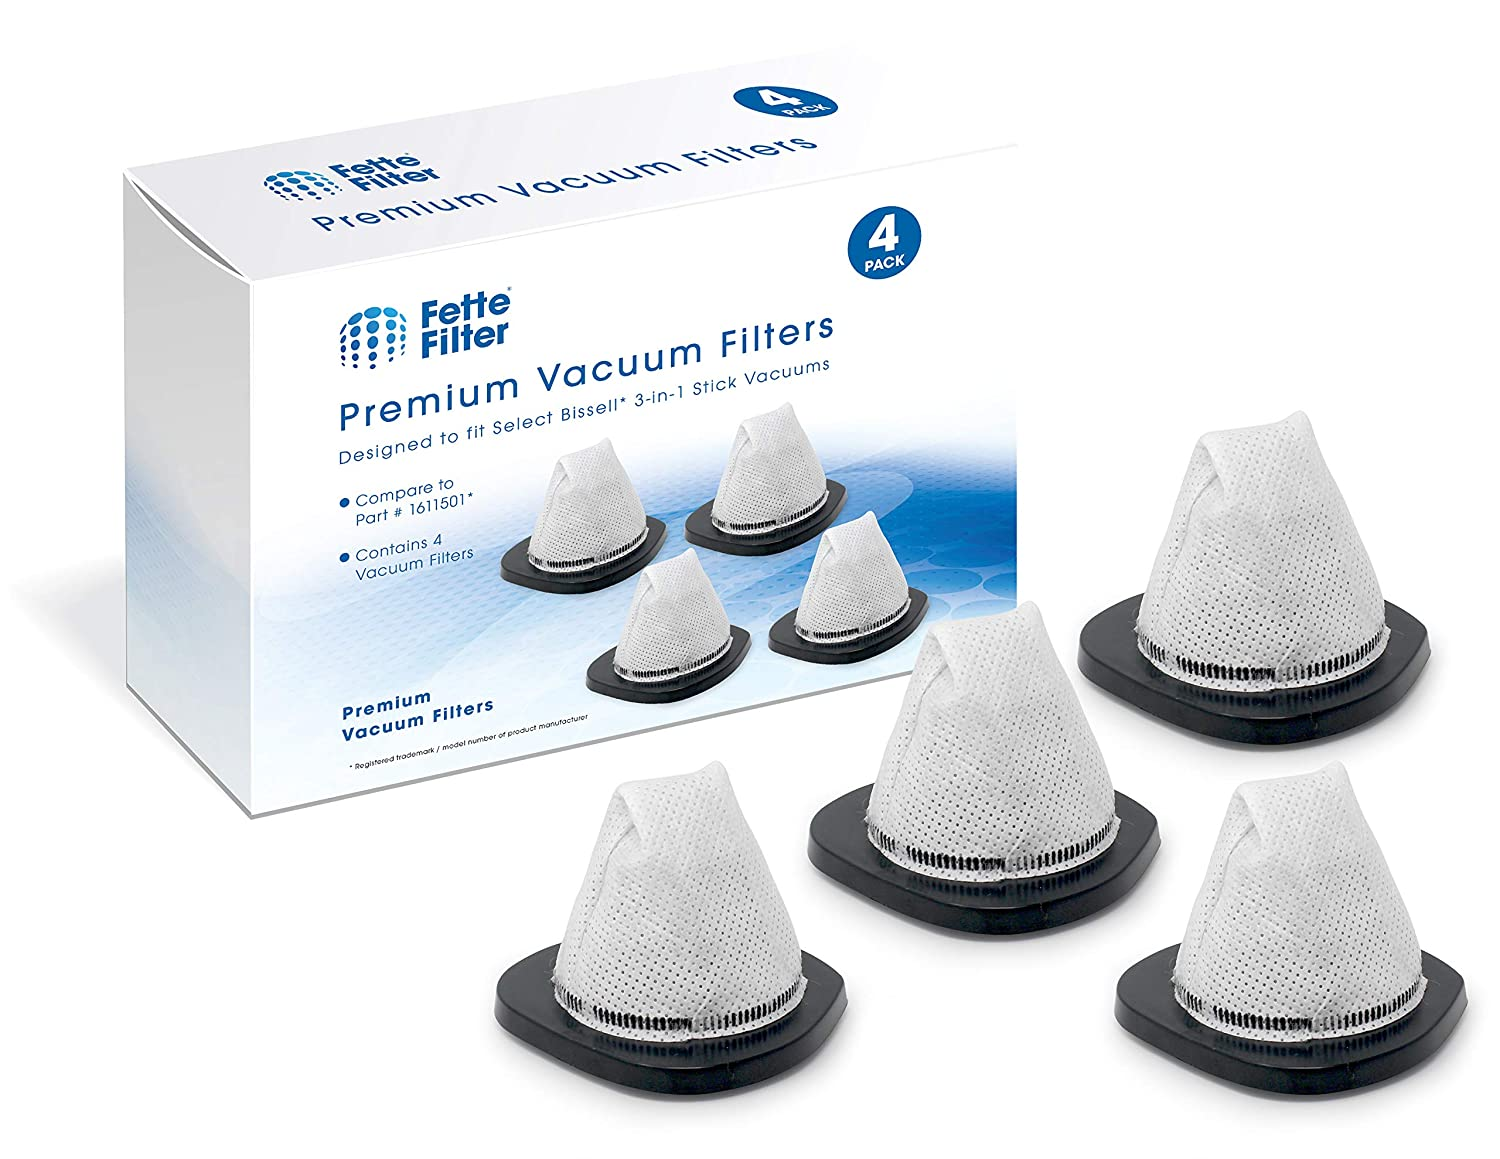 Fette Filter - Vacuum Filters Compatible with Bissell 3-in-1 Stick Vacuums. Compare to Part # 1611501. 4-Pack